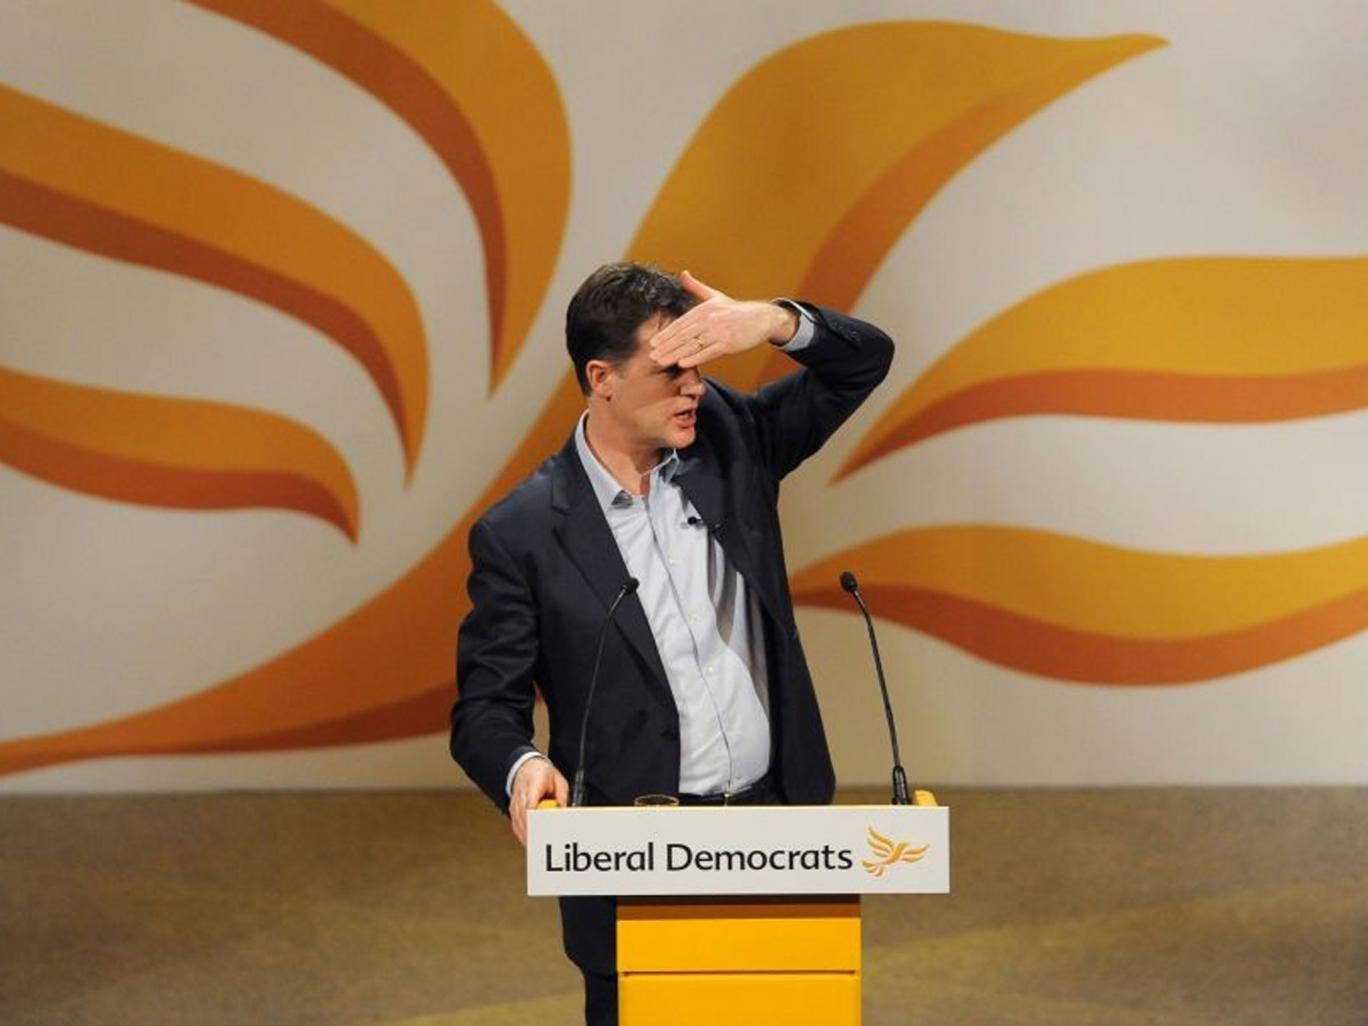 Nick Clegg will criticise the 'ungenerous, backward-looking politics' that has emerged in Britain